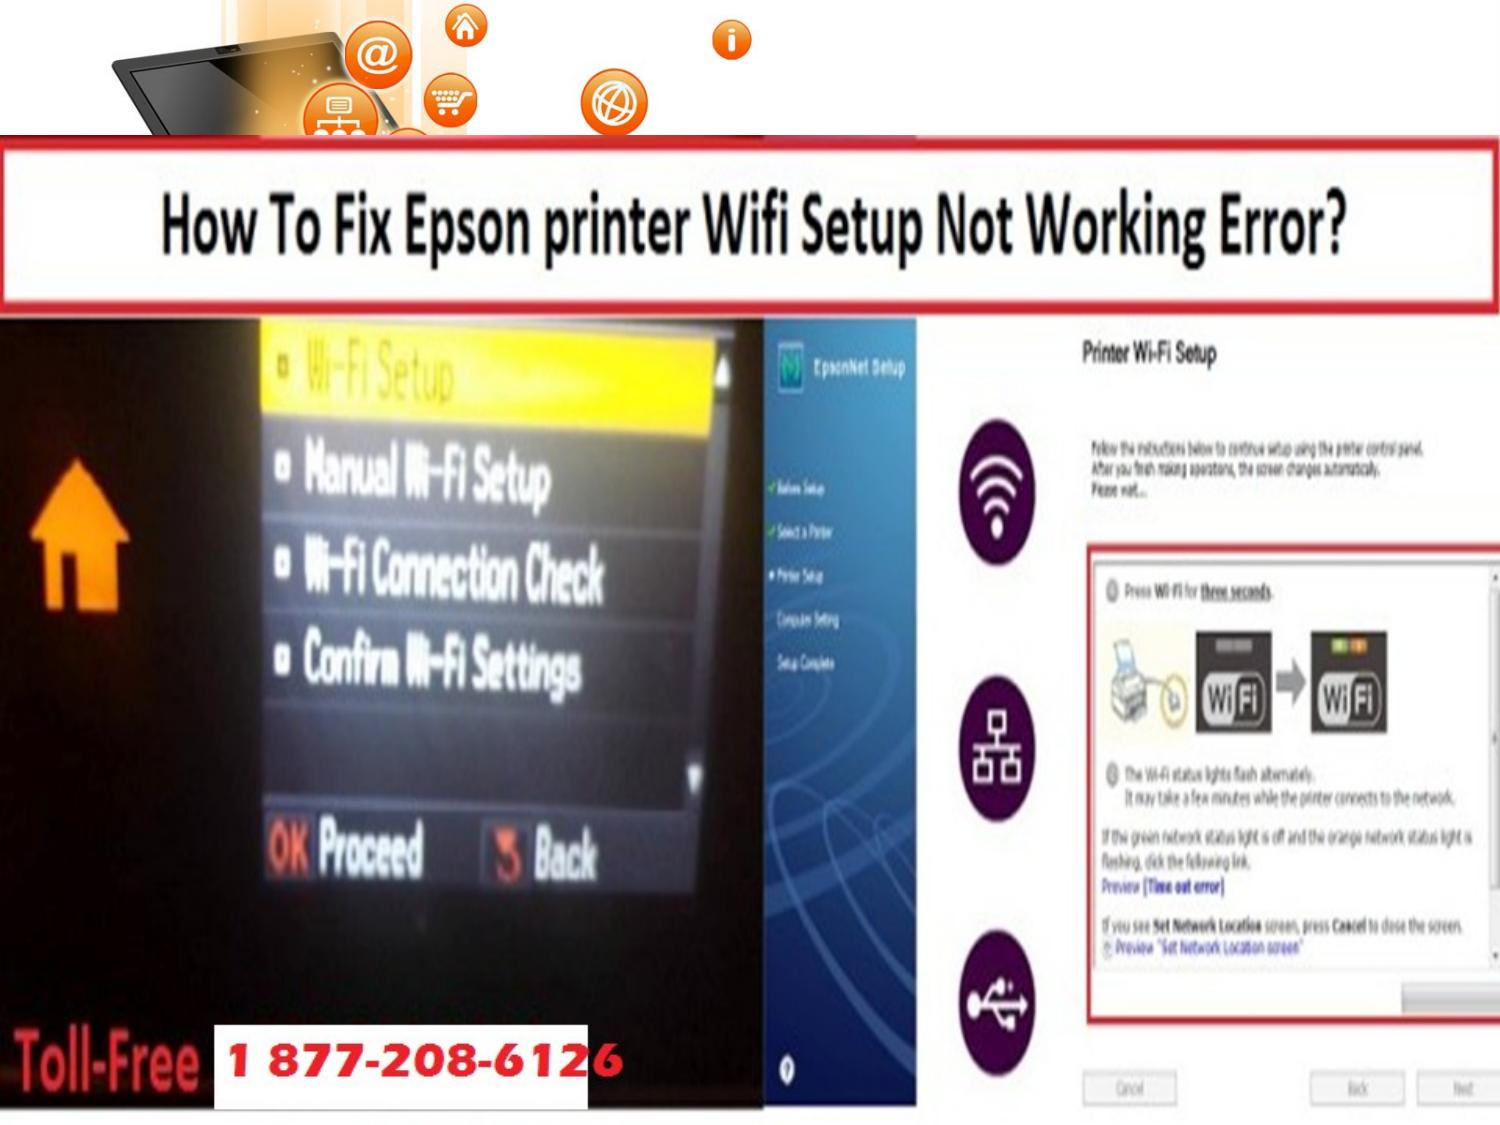 Epson Printer Not Printing Wirelessly